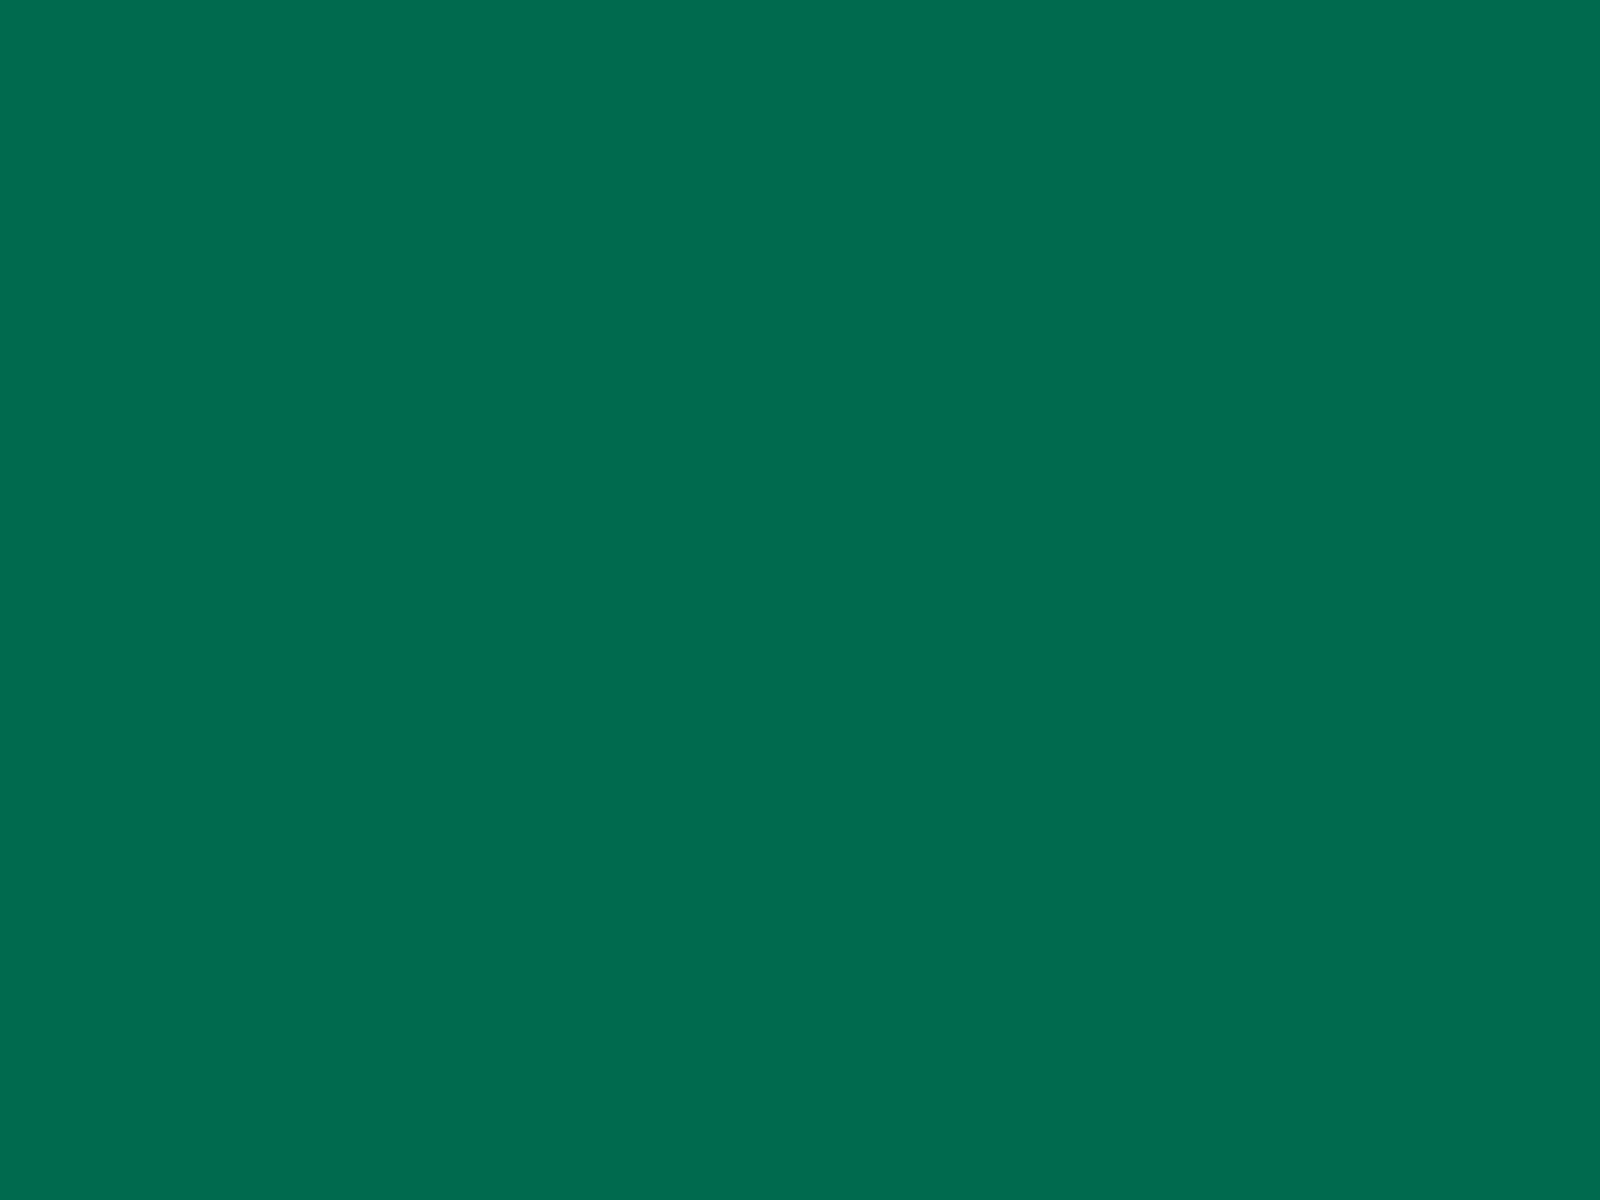 1600x1200 Bottle Green Solid Color Background